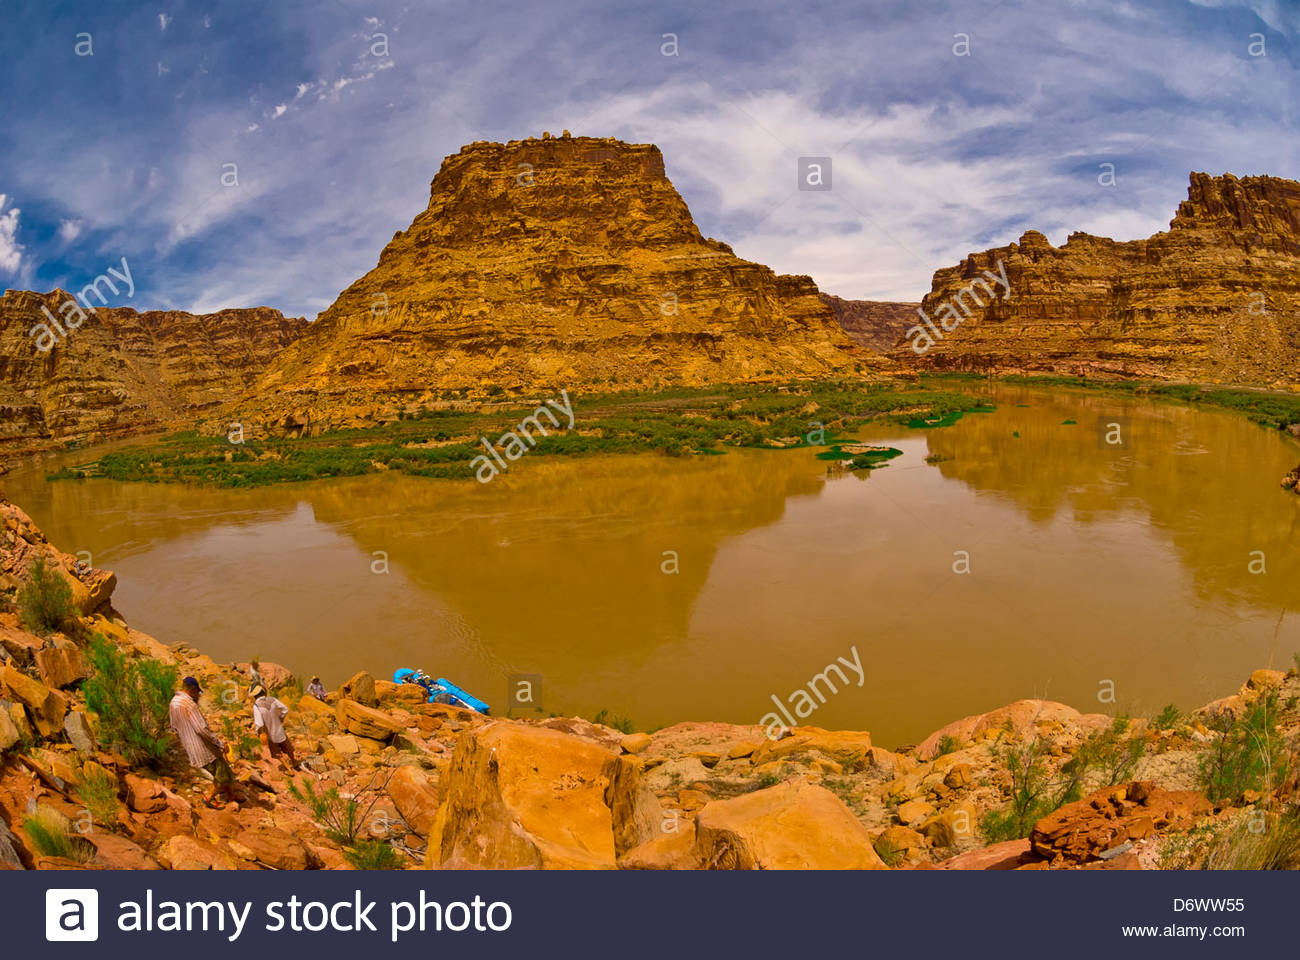 Canyon di pecora (cercando di fronte alla rupe di miglio Bend), il Fiume Colorado, Glen Canyon National Recreation Immagini Stock